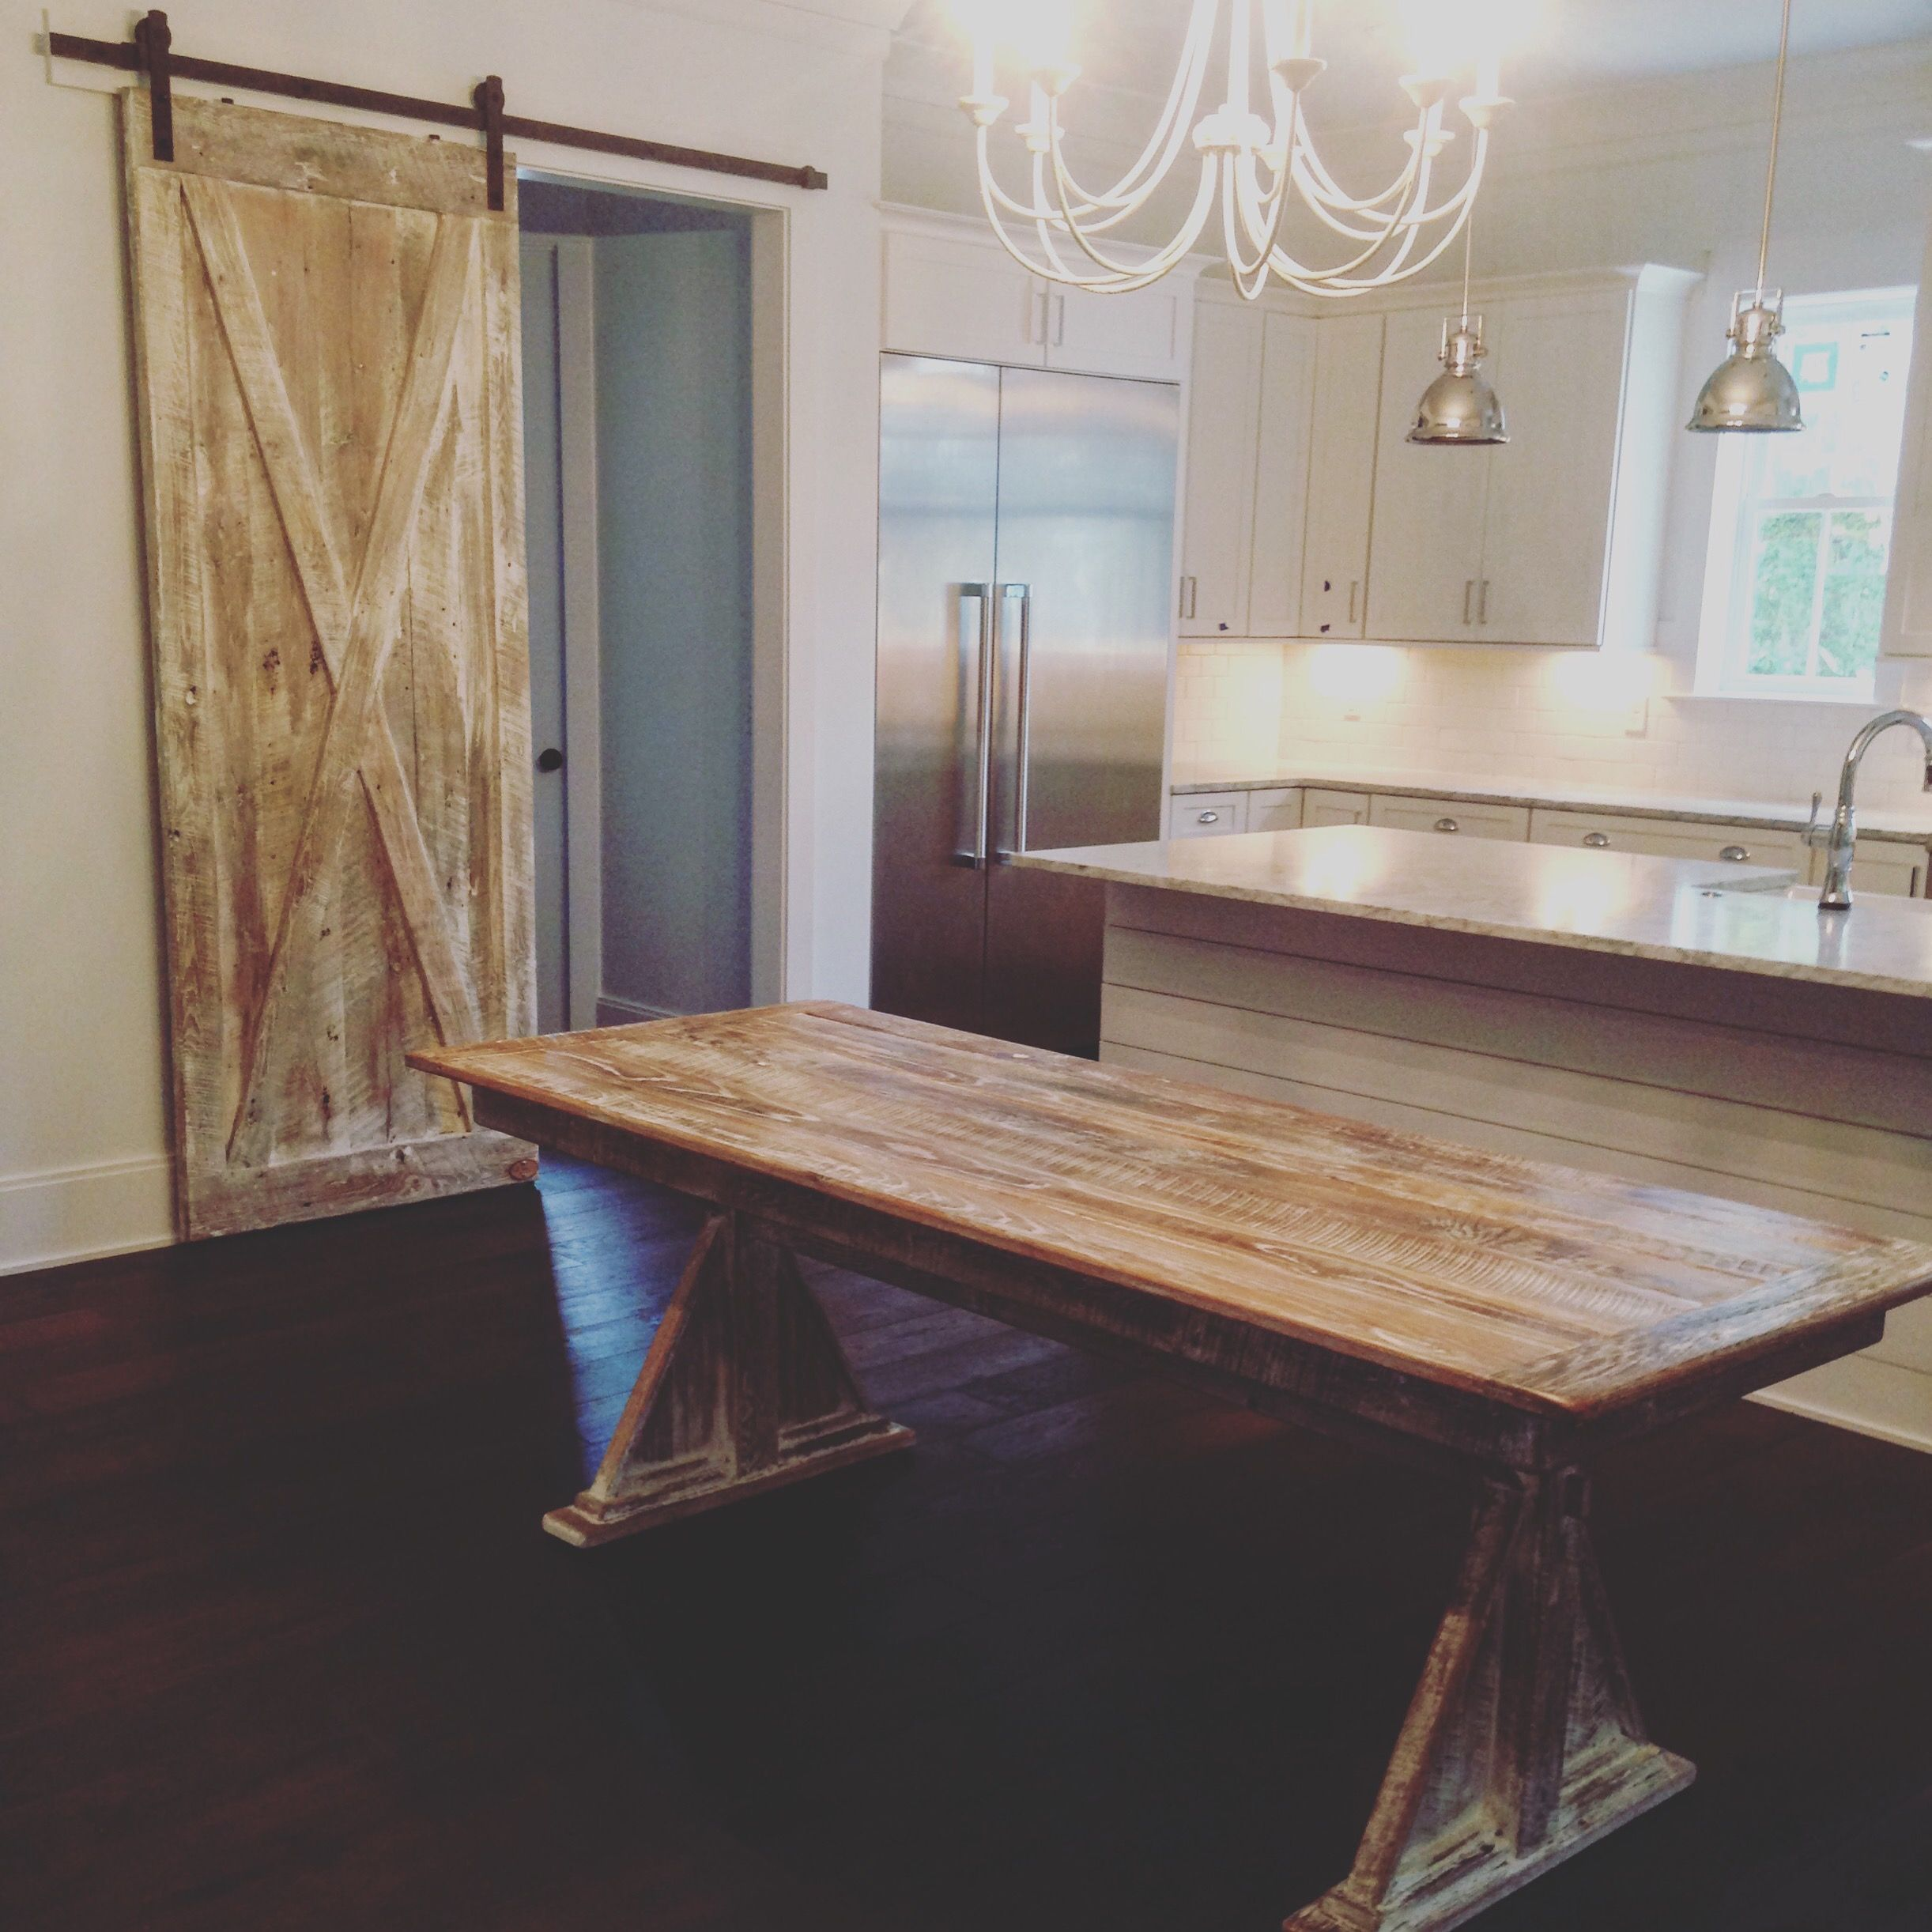 Reclaimed oak barn wood trestle table and sliding barn door with white lime wash